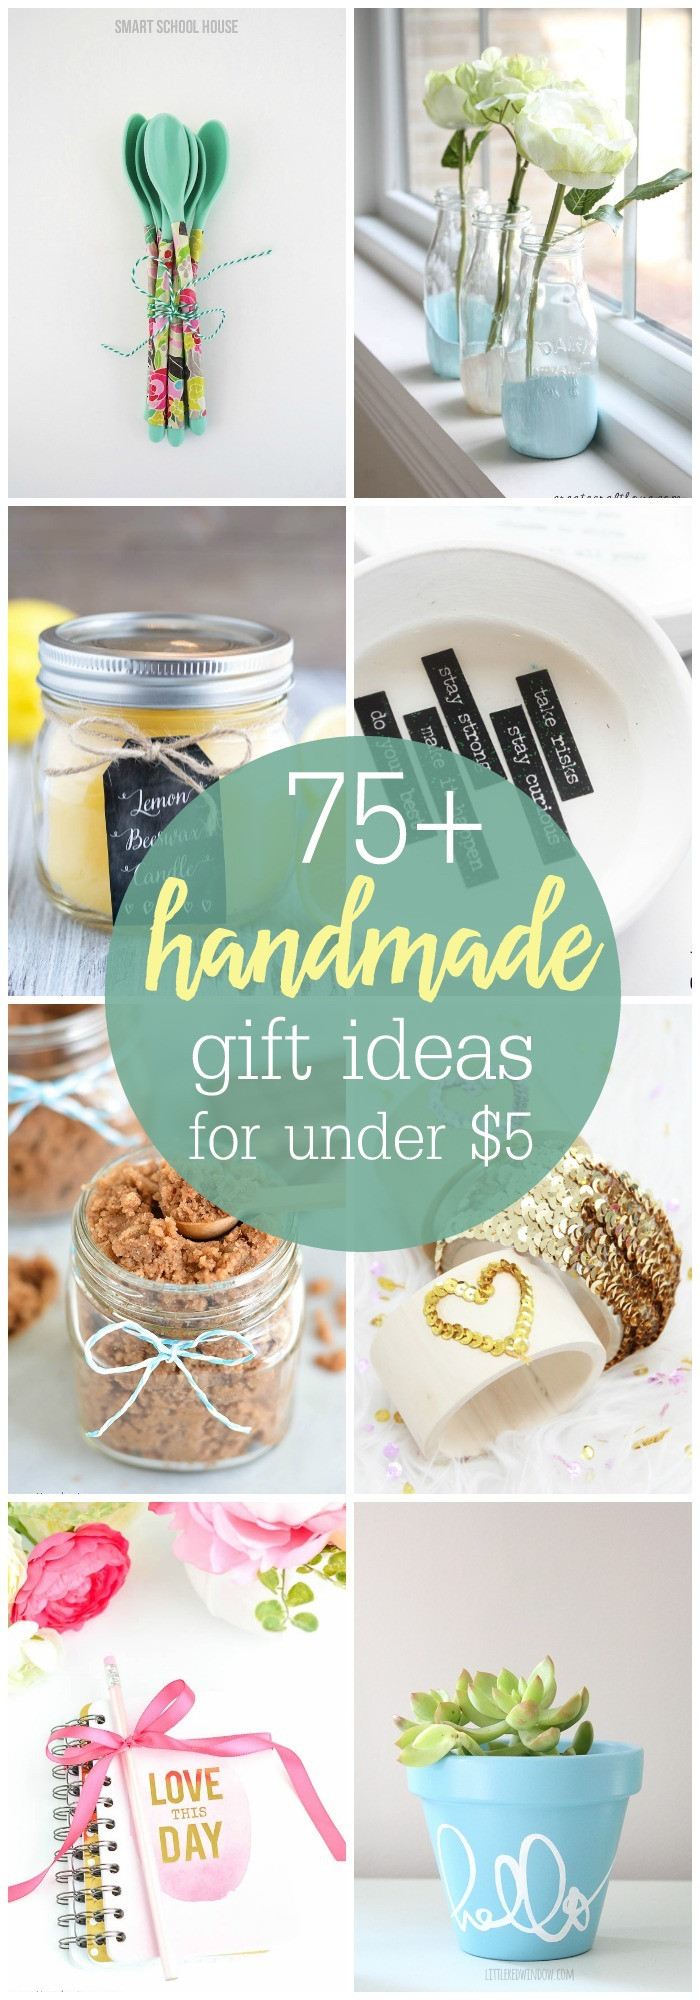 Best ideas about DIY Christmas Gift . Save or Pin DIY Gifts under $5 Now.